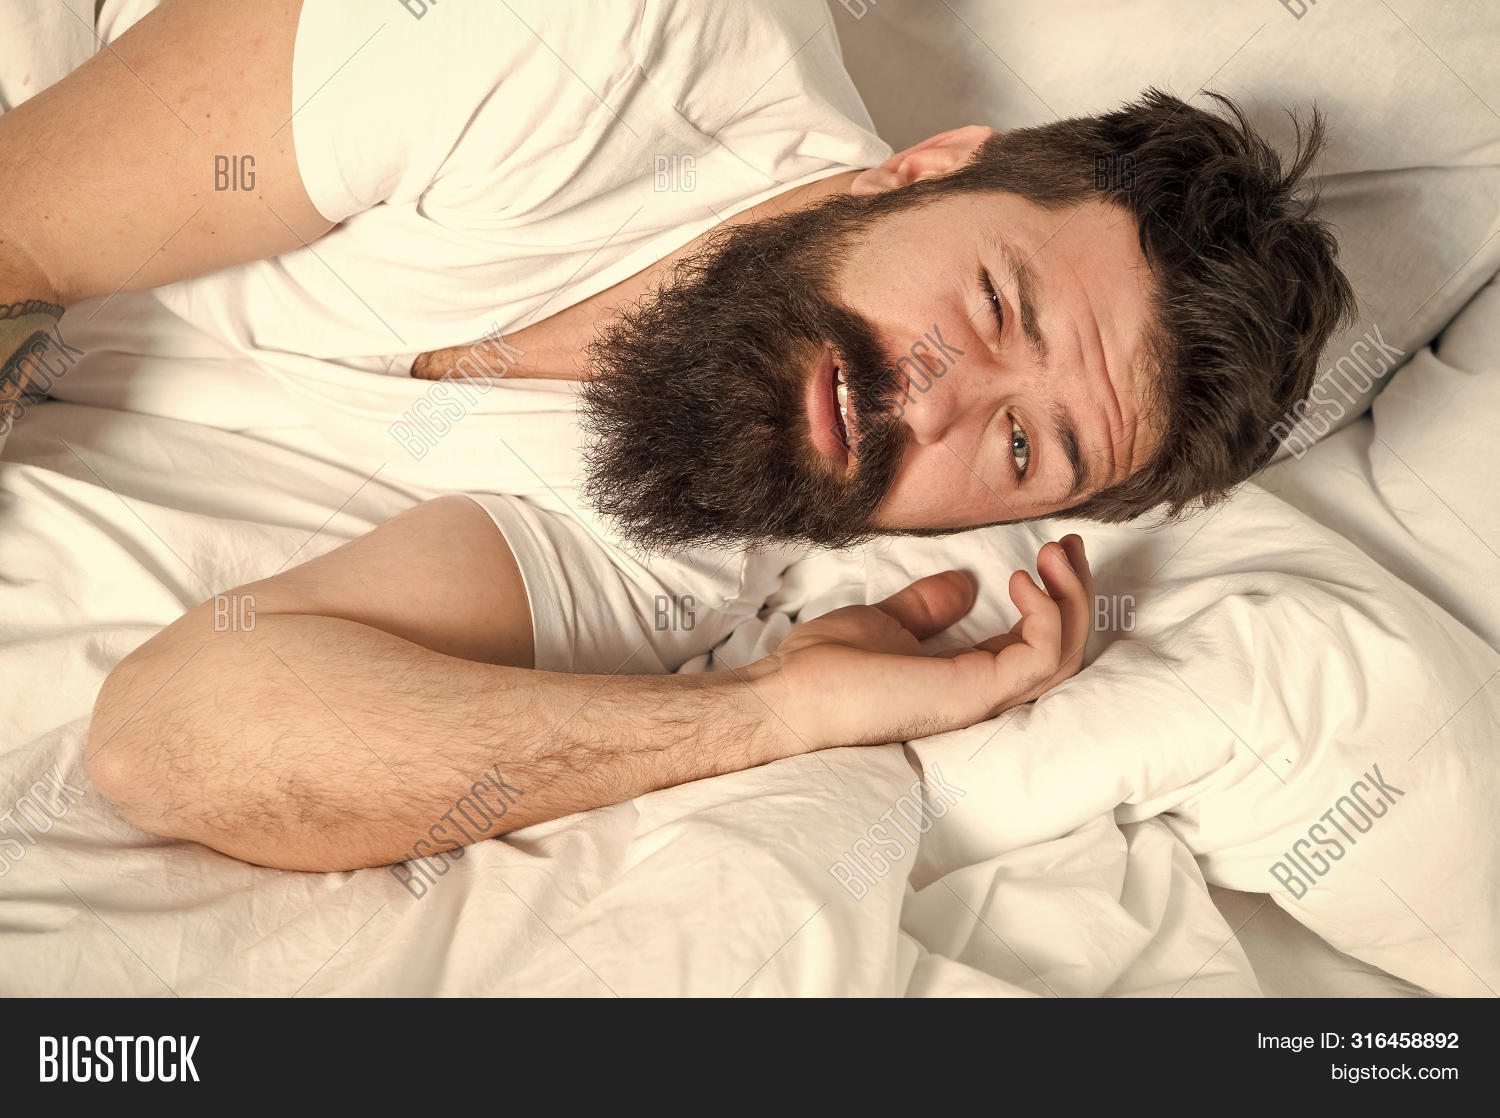 adult,awake,background,beard,bearded,bed,caucasian,concept,drowsy,early,exhausted,face,get,guy,handsome,healthy,hipster,hours,insomnia,lazy,leisure,macho,man,morning,mustache,nap,pillow,problems,relax,sheets,sleep,sleepy,time,tired,unhappy,unshaven,up,wake,waking,wellbeing,white,woke